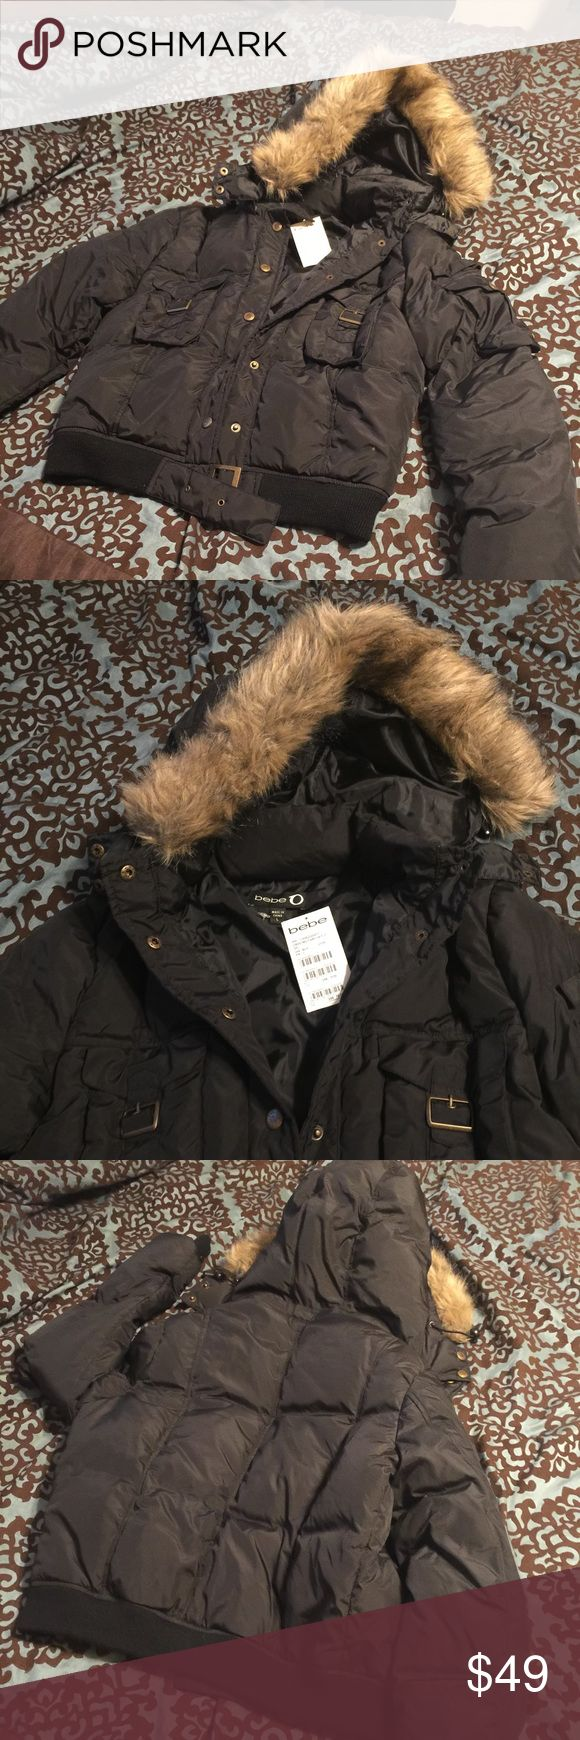 bebe cropped military/bomber jacket In new condition, with removable zippered hood.  UPDATE: sorry accidentally pulled tag off when trying it on to update picture modeling. I still have tag though. Fits me small so will definitely look way better on the right size person! bebe Jackets & Coats